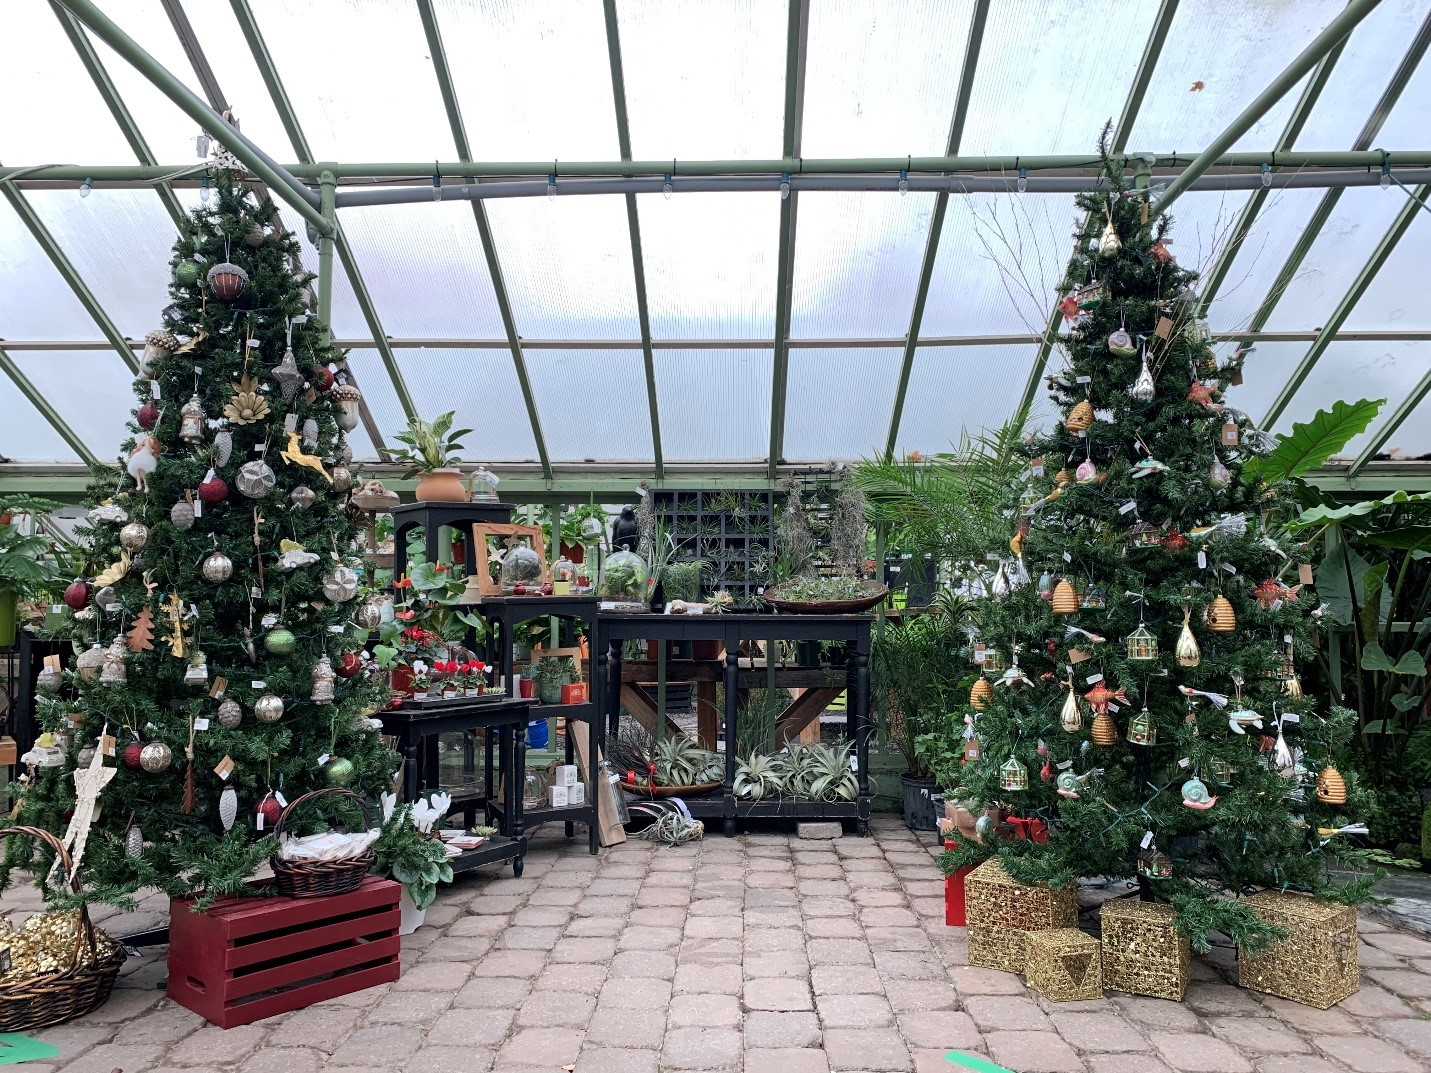 Drake's 7 Dees Garden Center decorated for the holidays